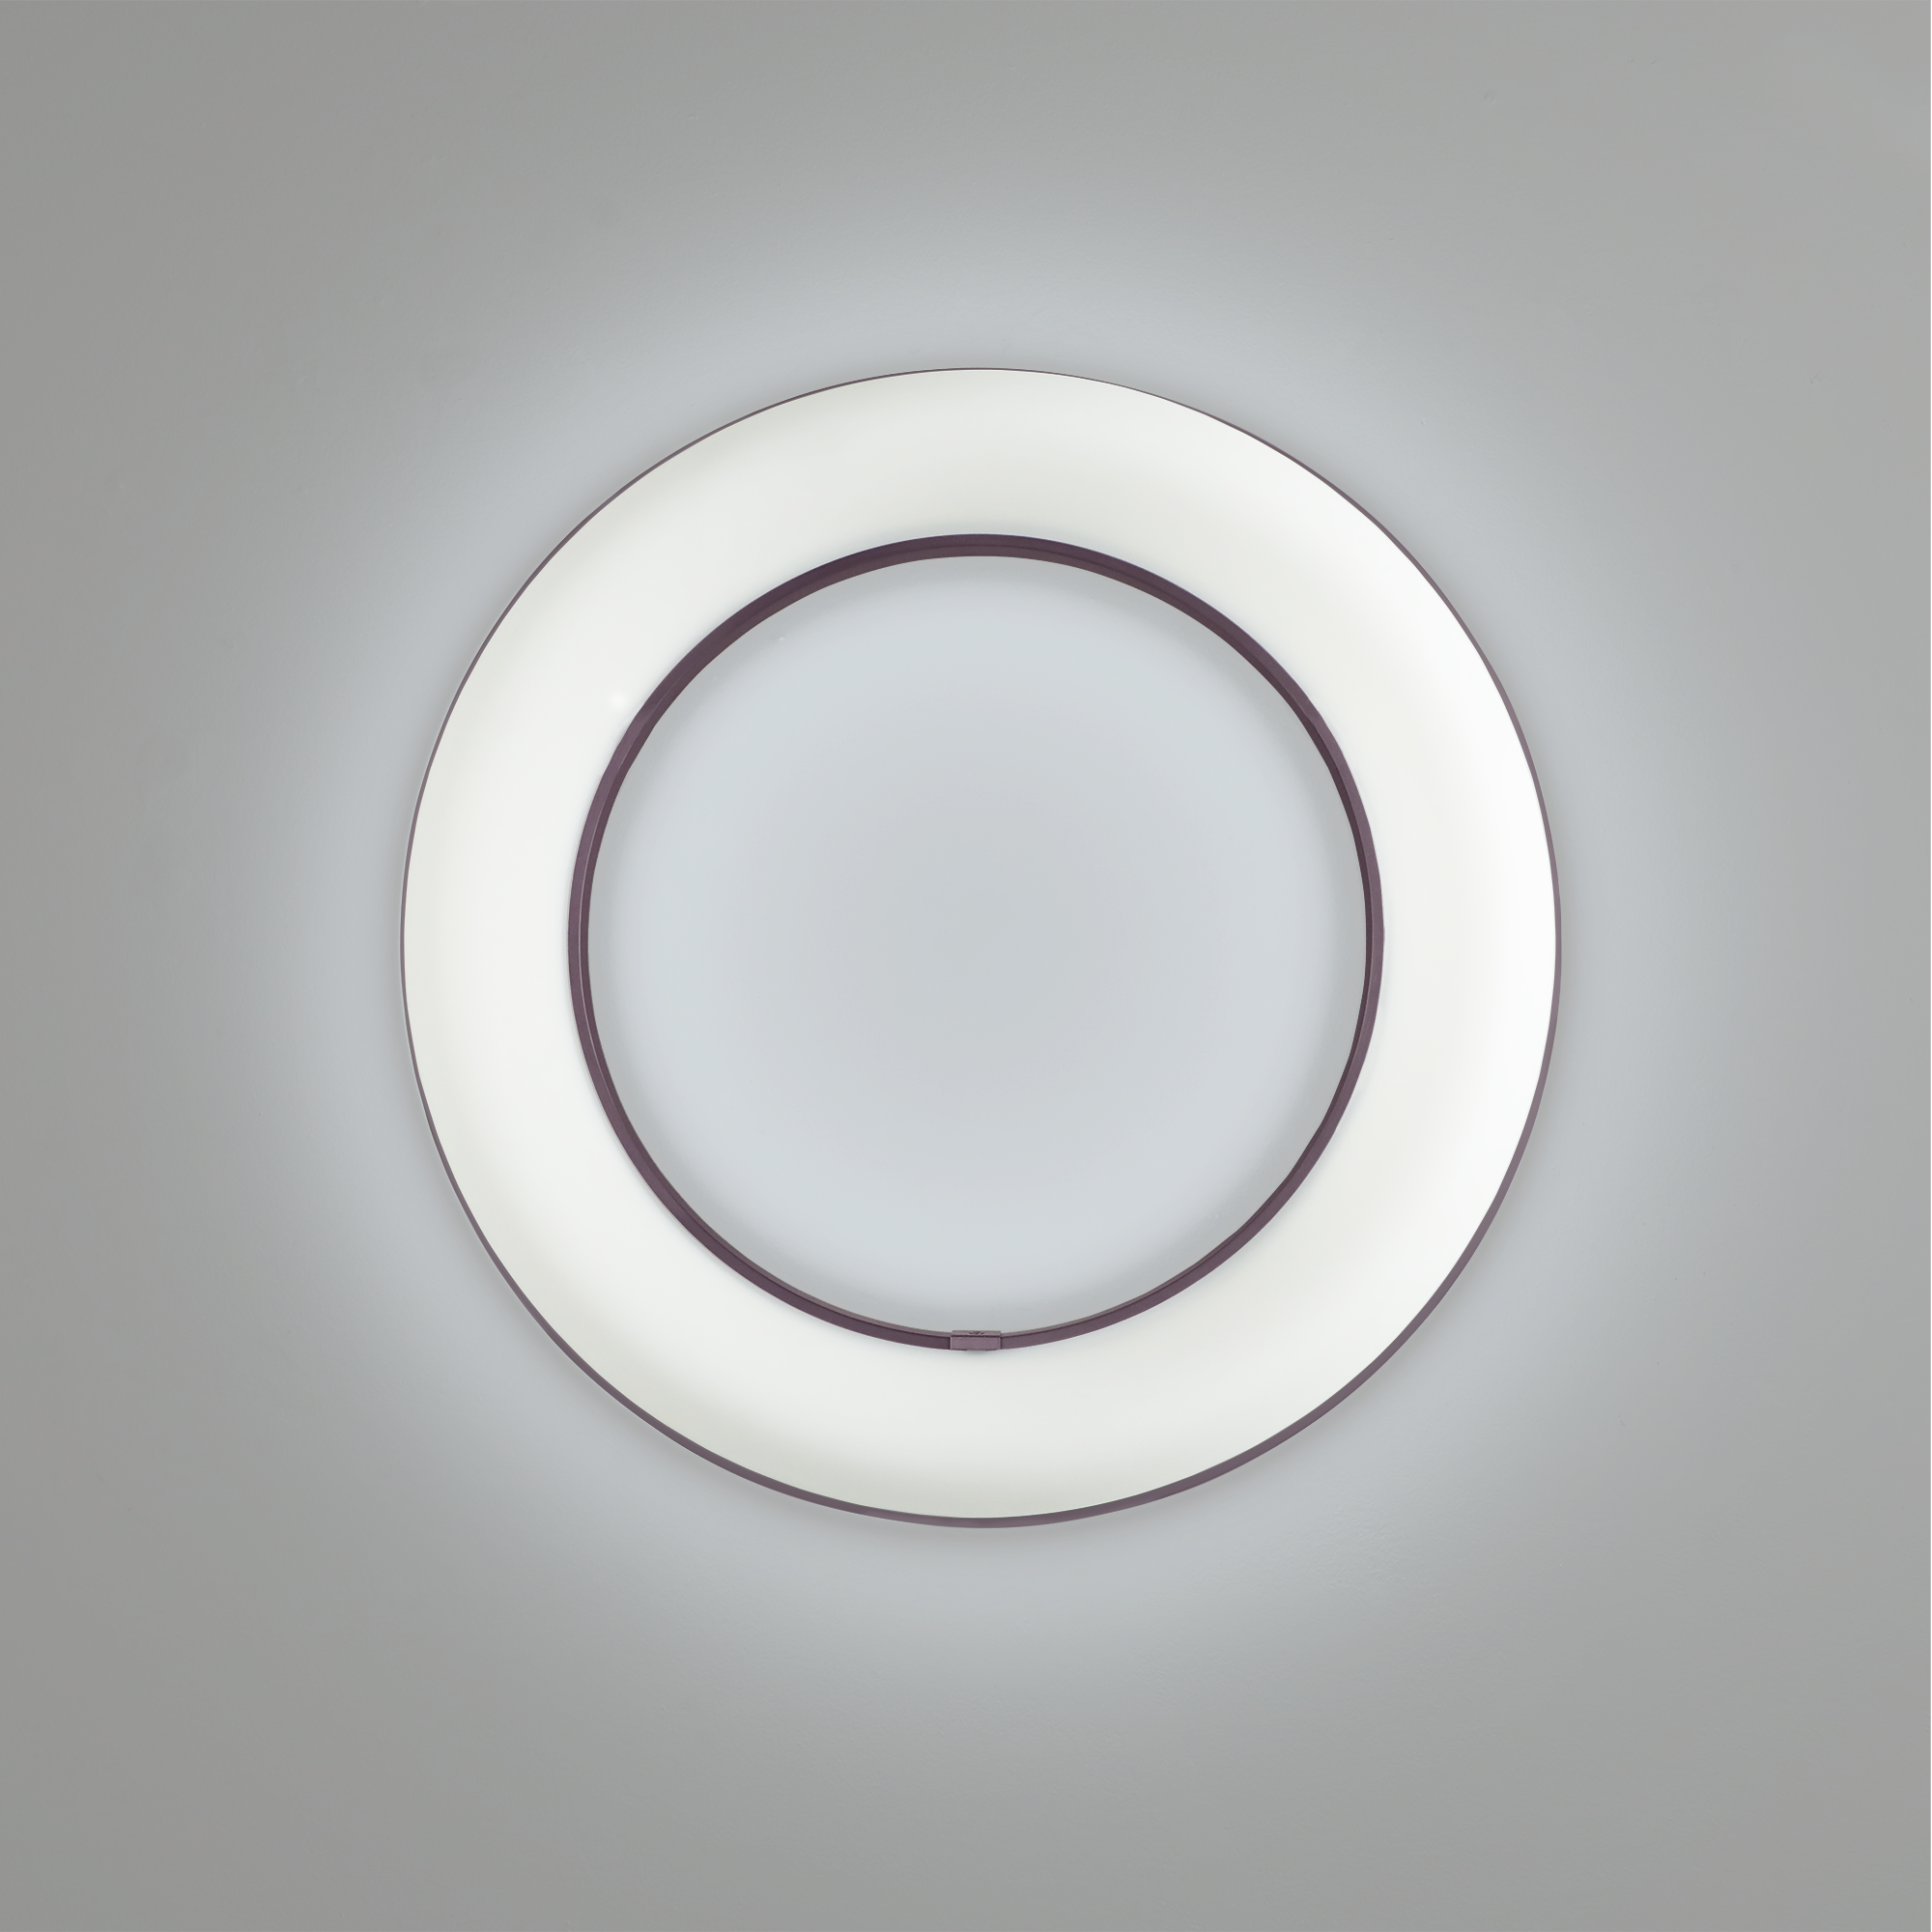 Meridian round new surface mounted ring lights